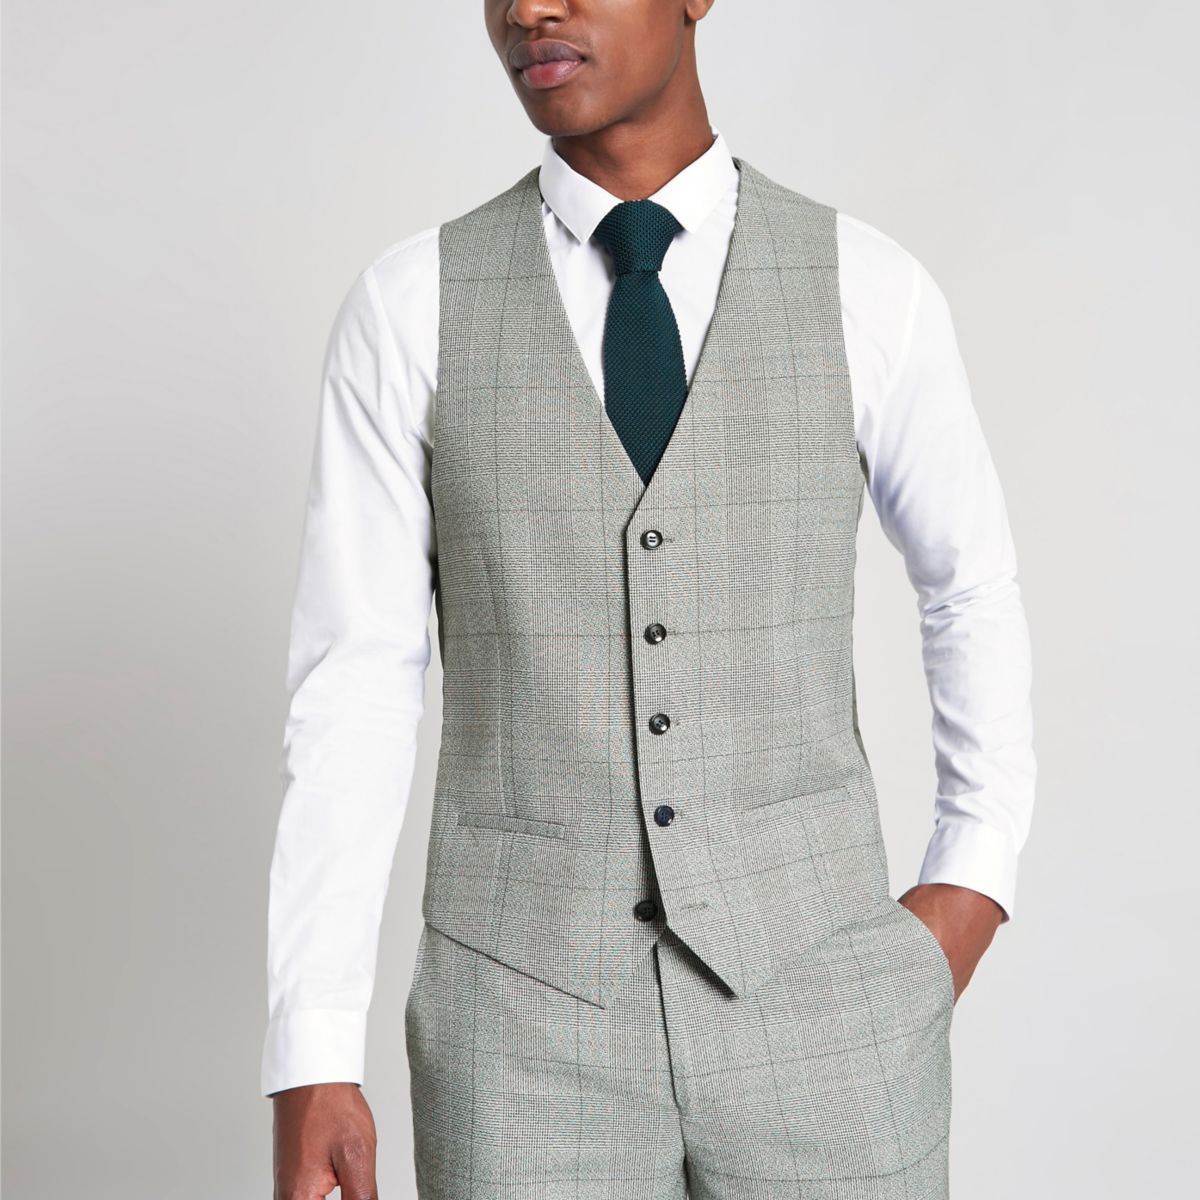 Grey check suit vest